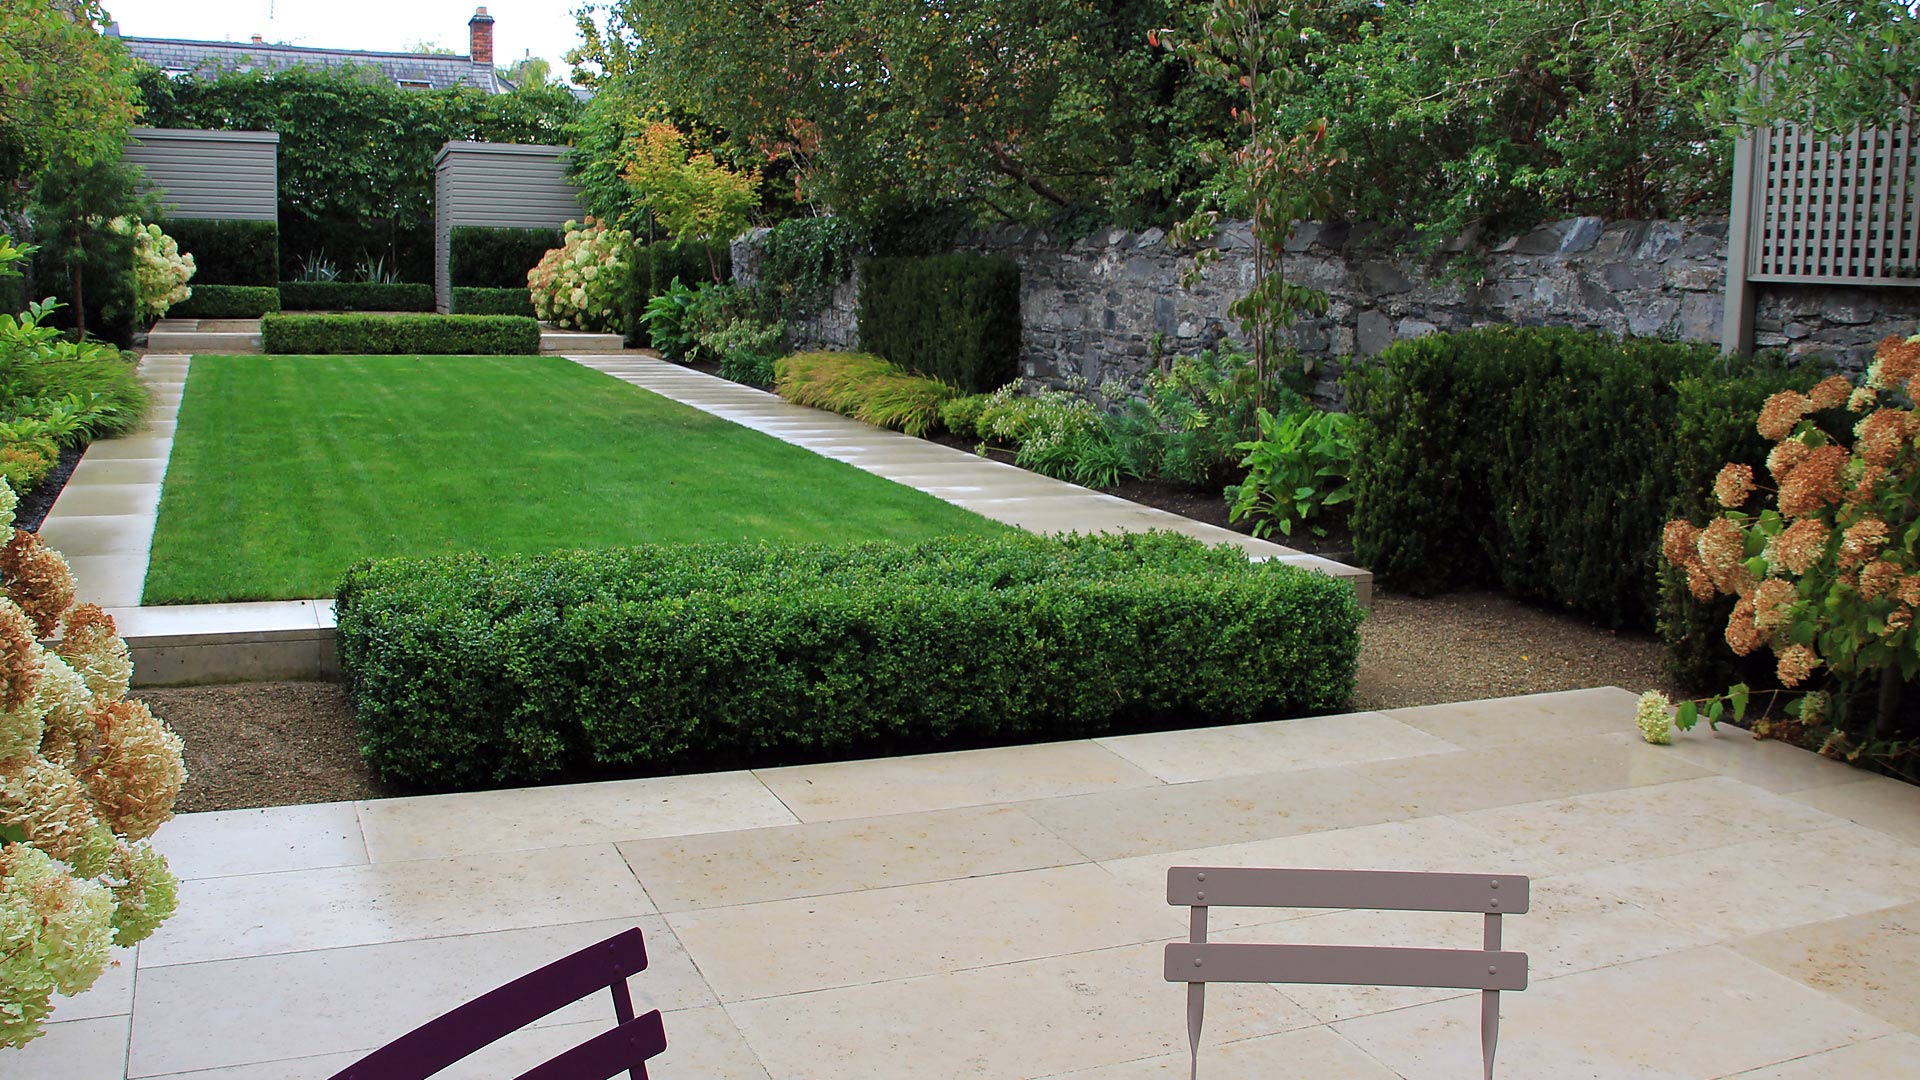 1000 images about trethewey contemporary lawn on for Contemporary garden design ideas